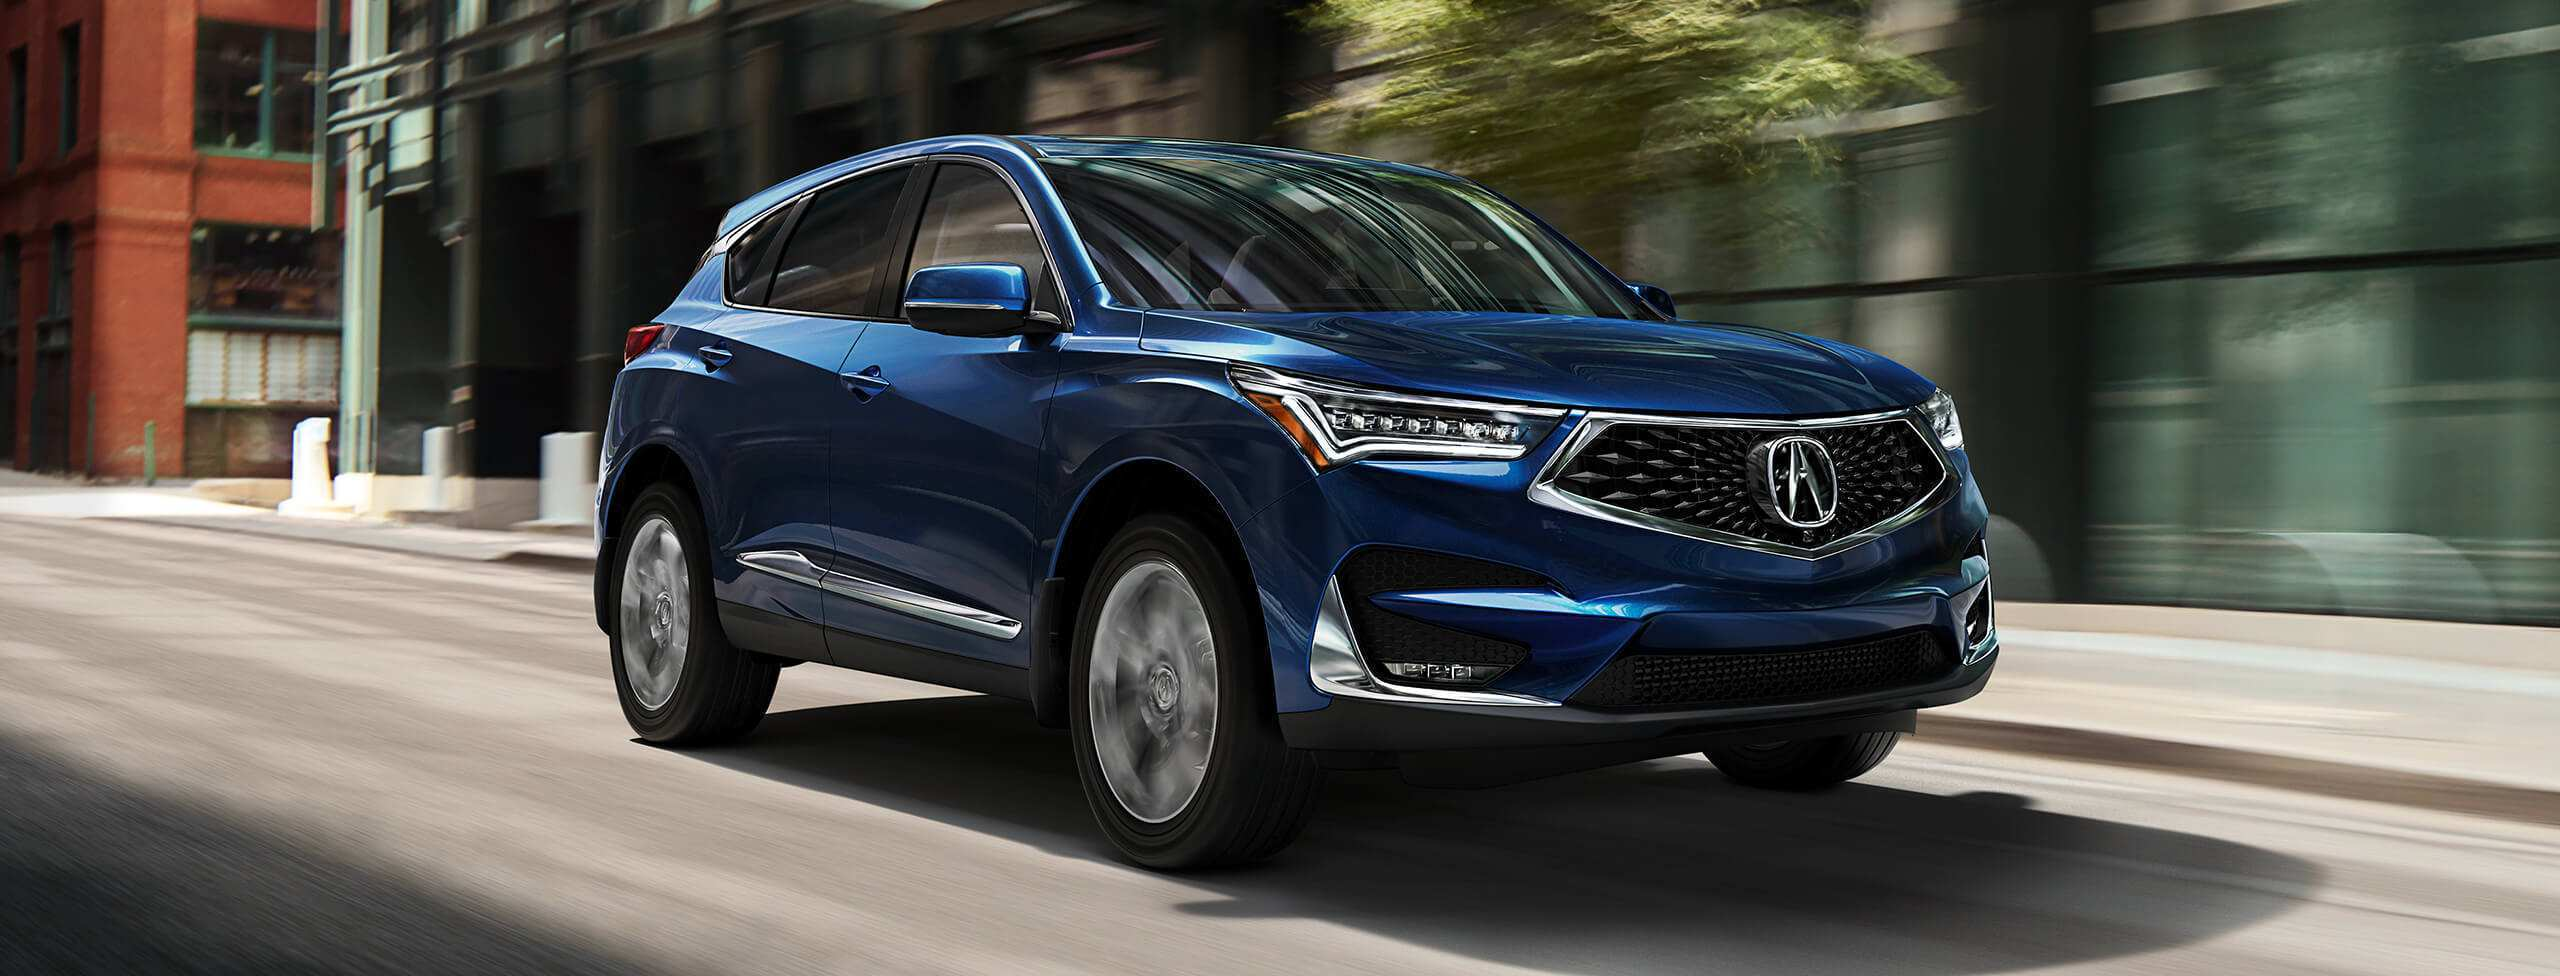 38 Best Acura Rdx 2020 Redesign